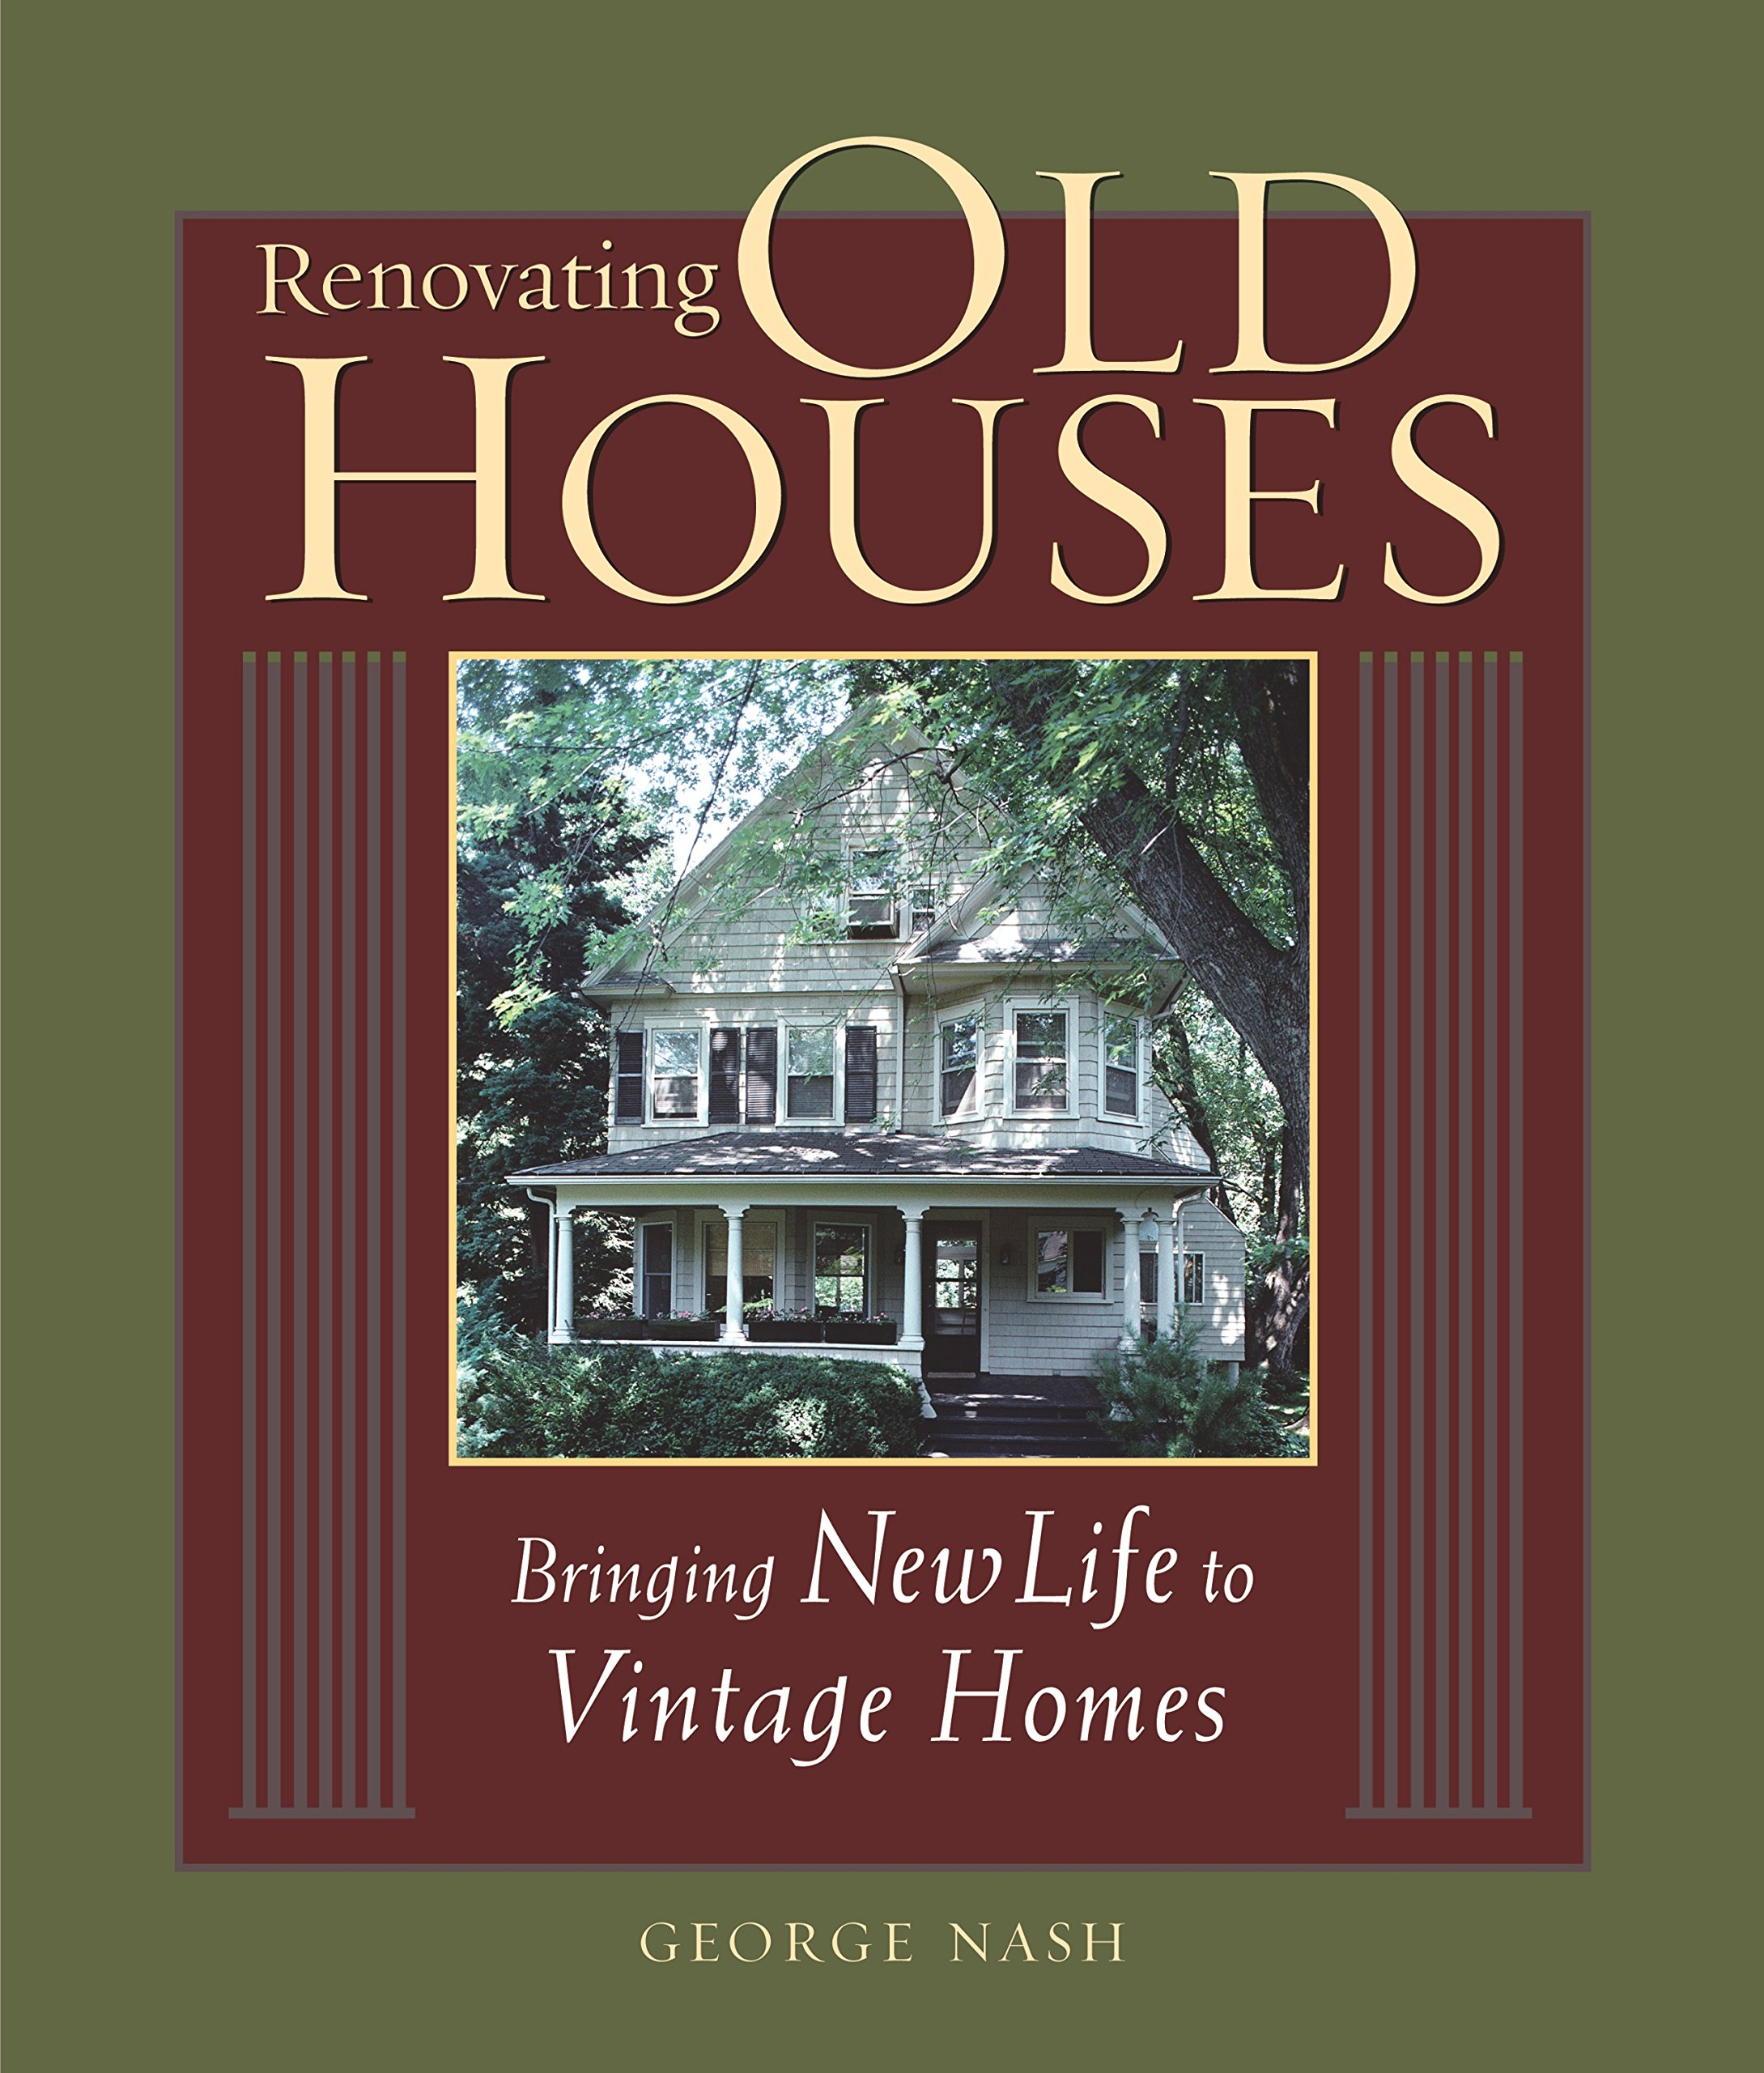 Renovating Old Houses: Bringing New Life to Vintage Homes (For Pros By  Pros): George Nash: 0094115585354: Amazon.com: Books